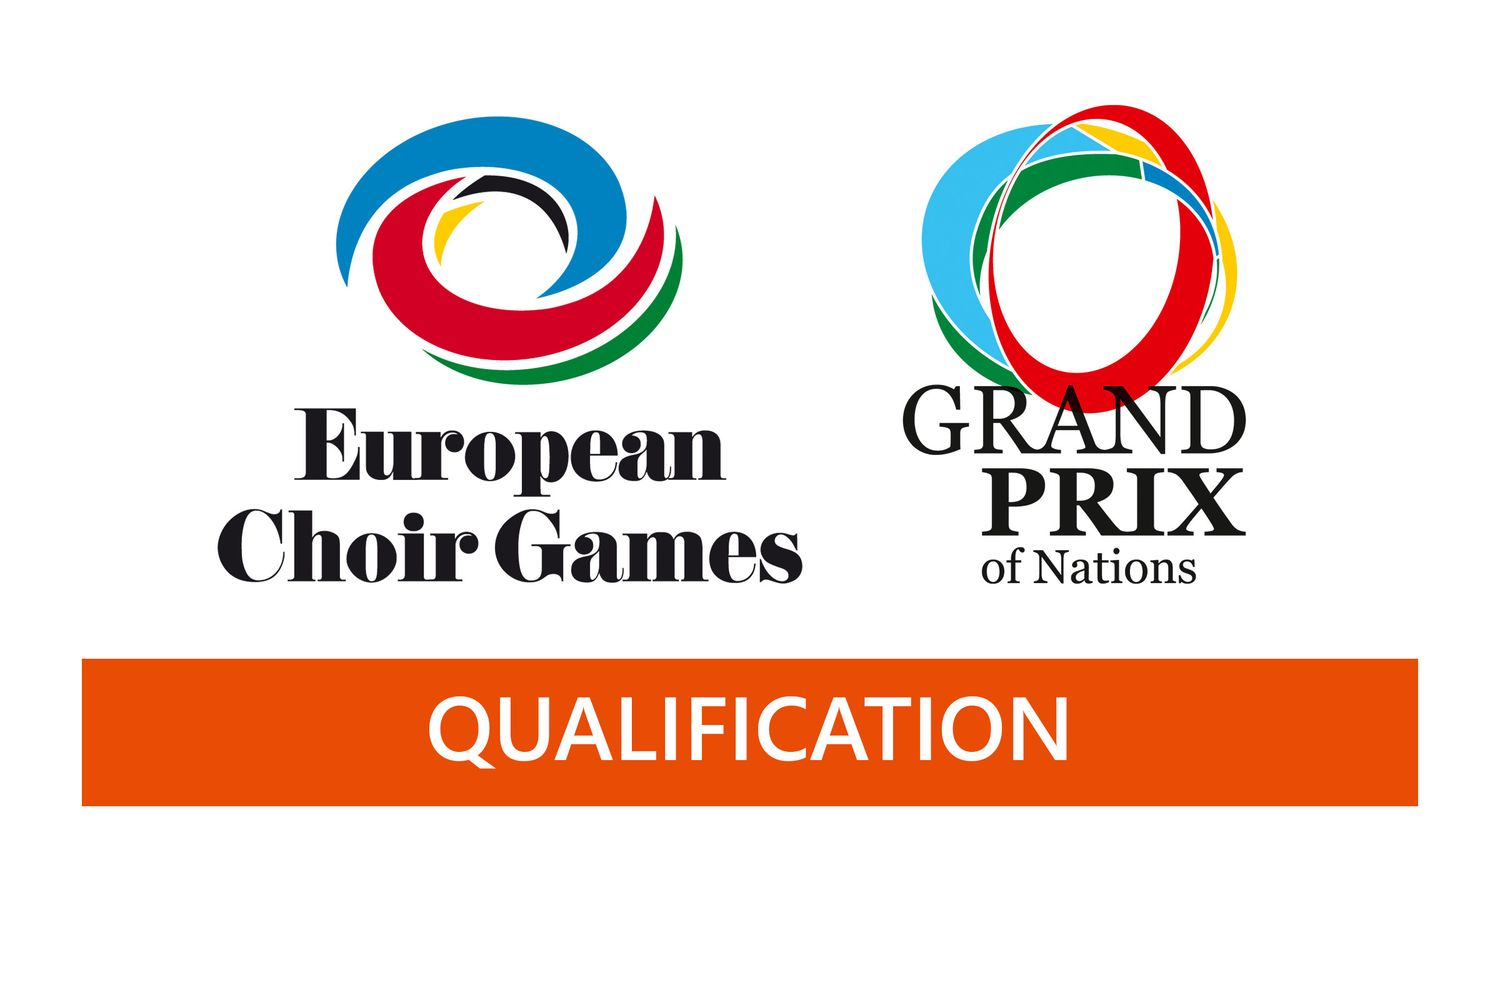 European Choir Games Qualification Logos